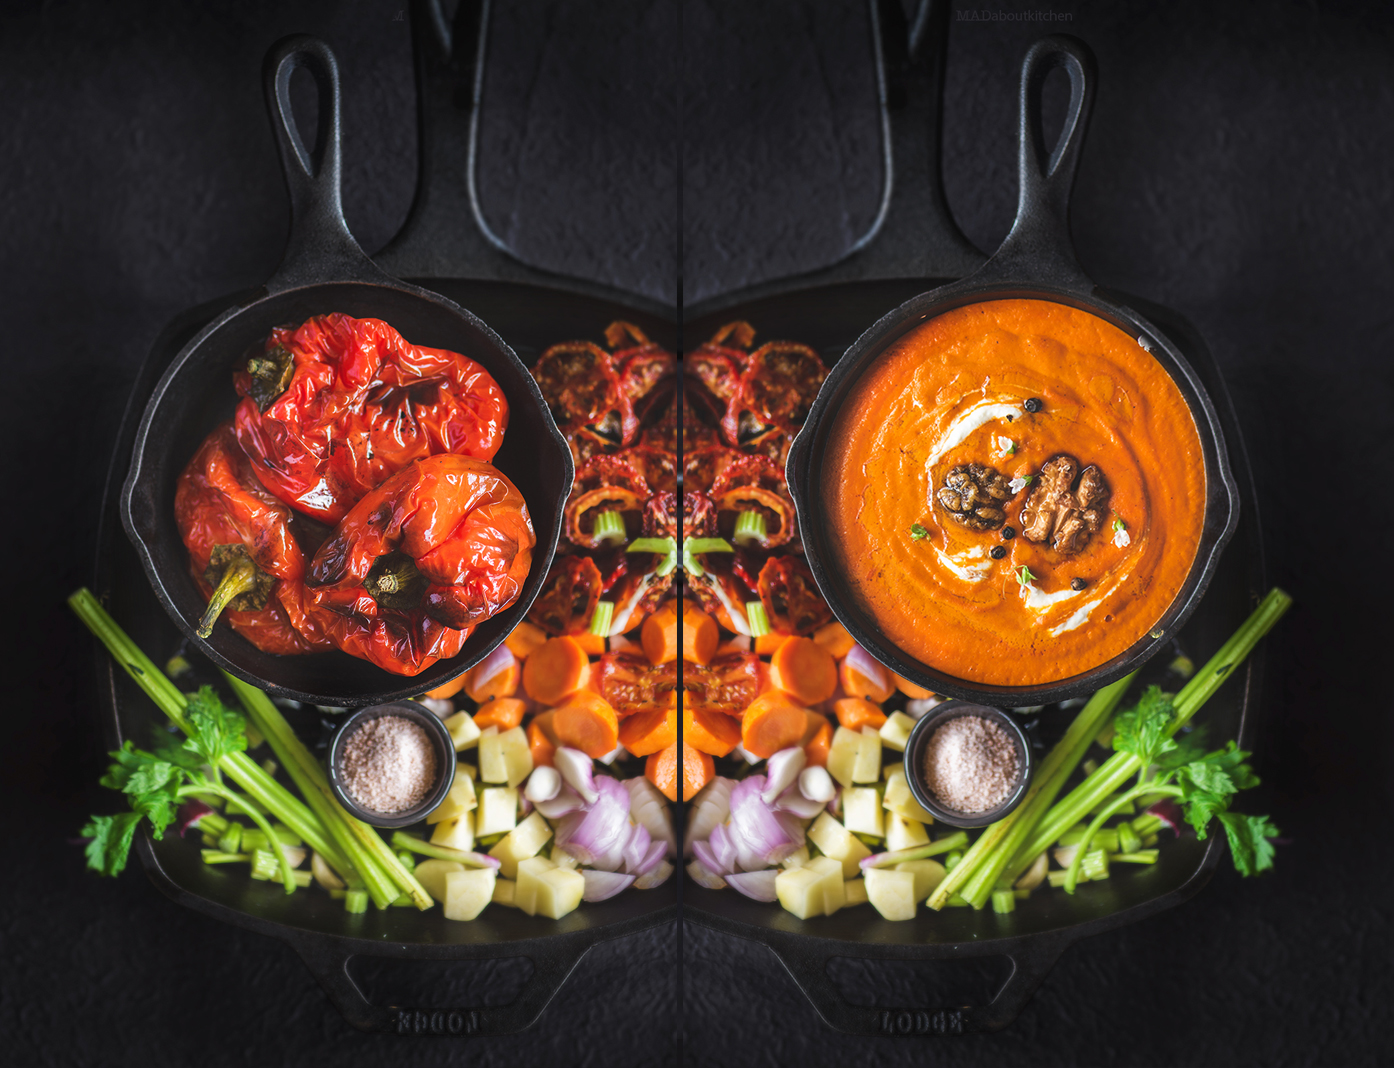 Roasted bell pepper soup made using roasted red pepper has an intense smoky flavour and is creamy and absolutely flavourful.